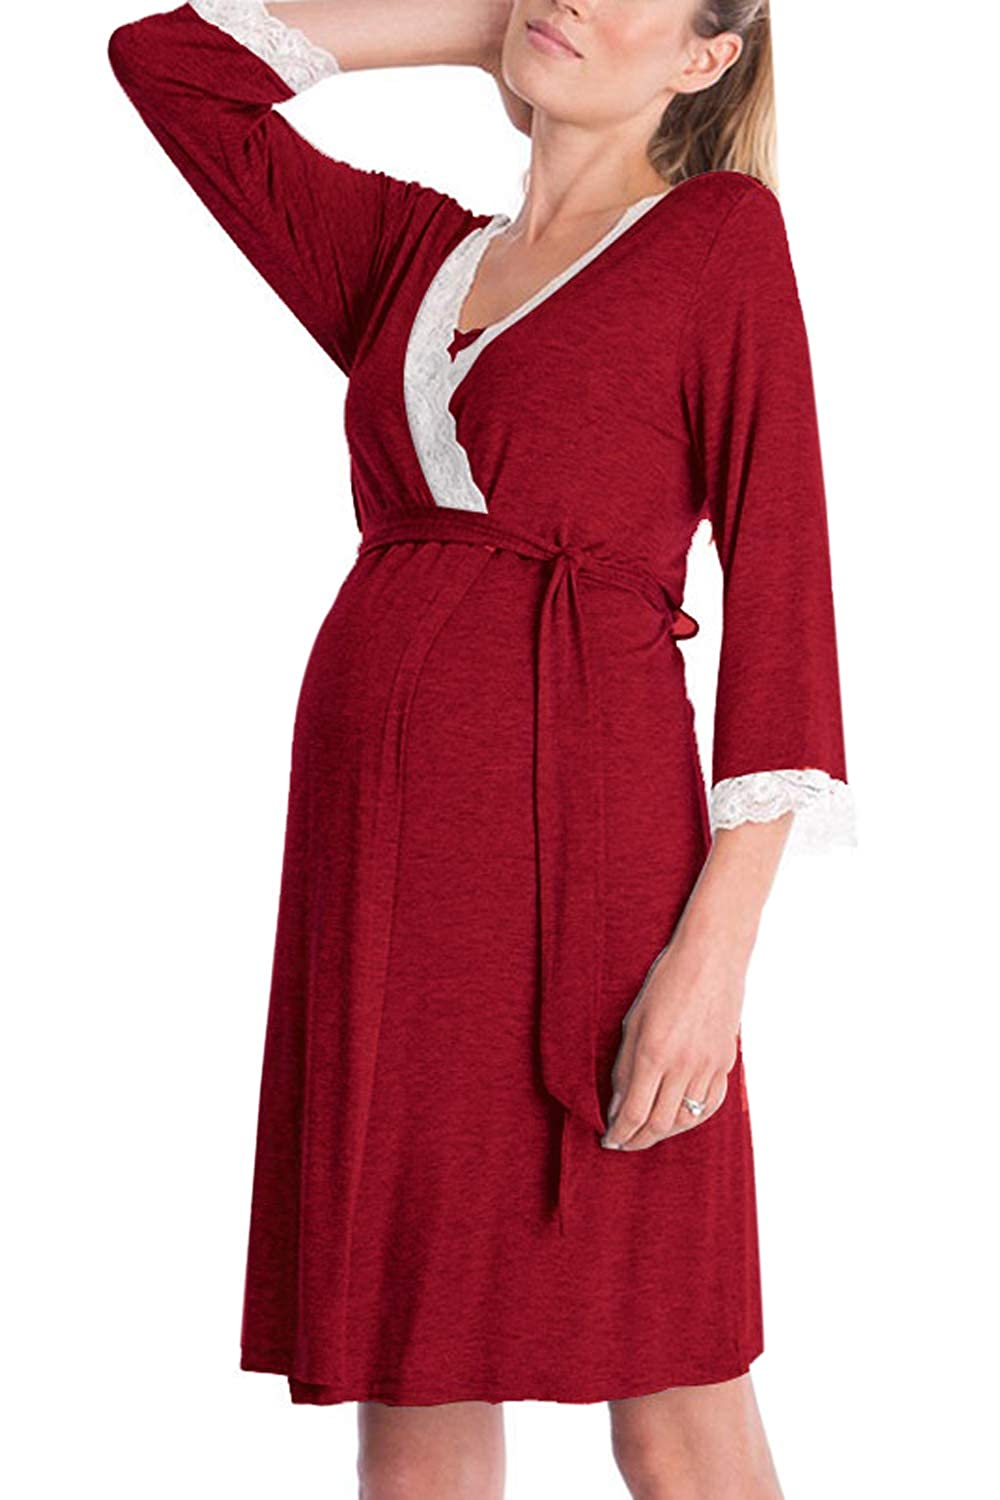 Jumojufol Womens Maternity Nightgowns 3/4 Sleeve Lace Nursing Sleepwear Robe